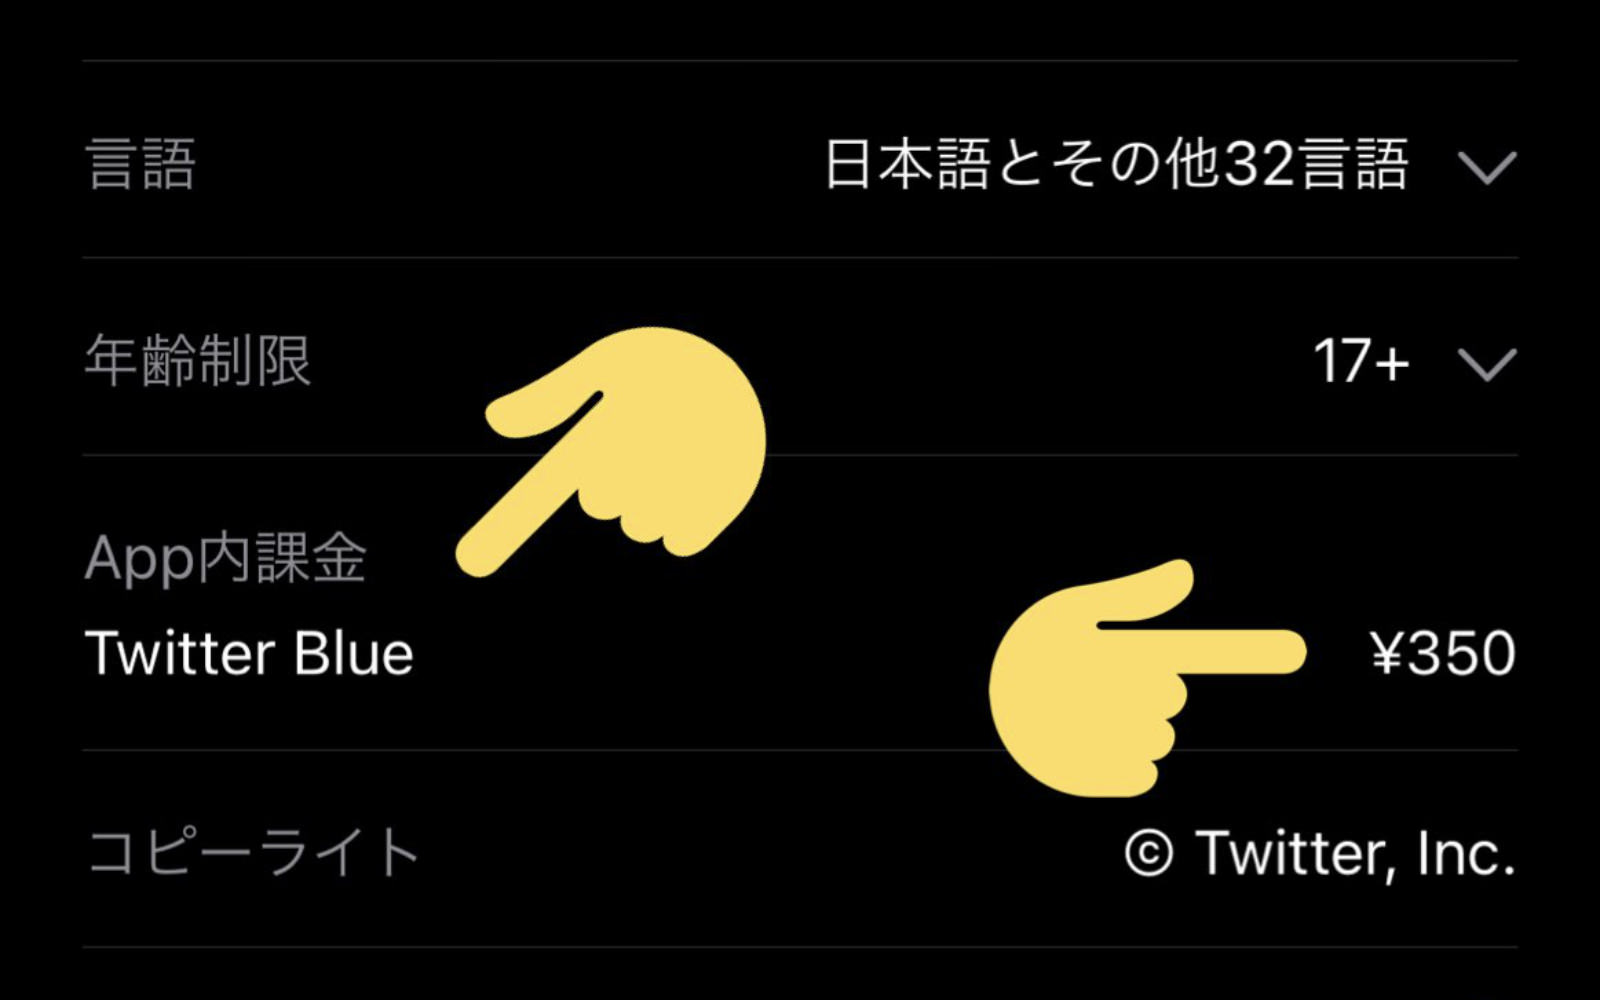 Twitter Blue Pricing in Japan